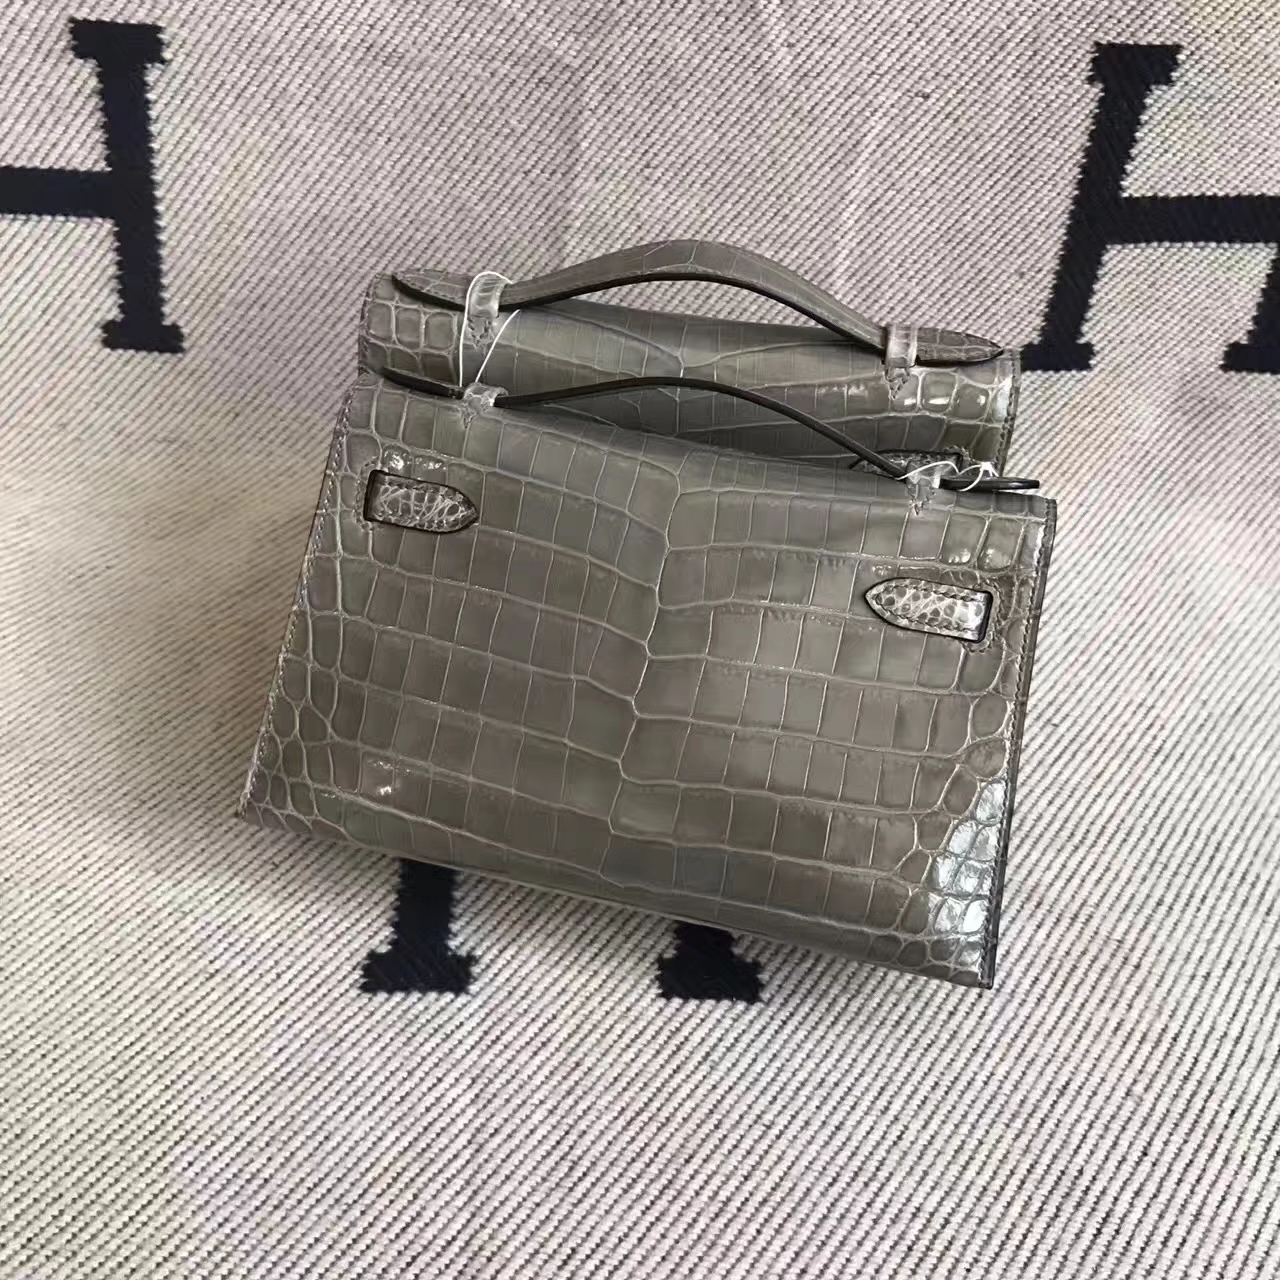 Hermes Minikelly Clutch Bag 22CM in CK81 Gris Tourterelle Crocodile Leather